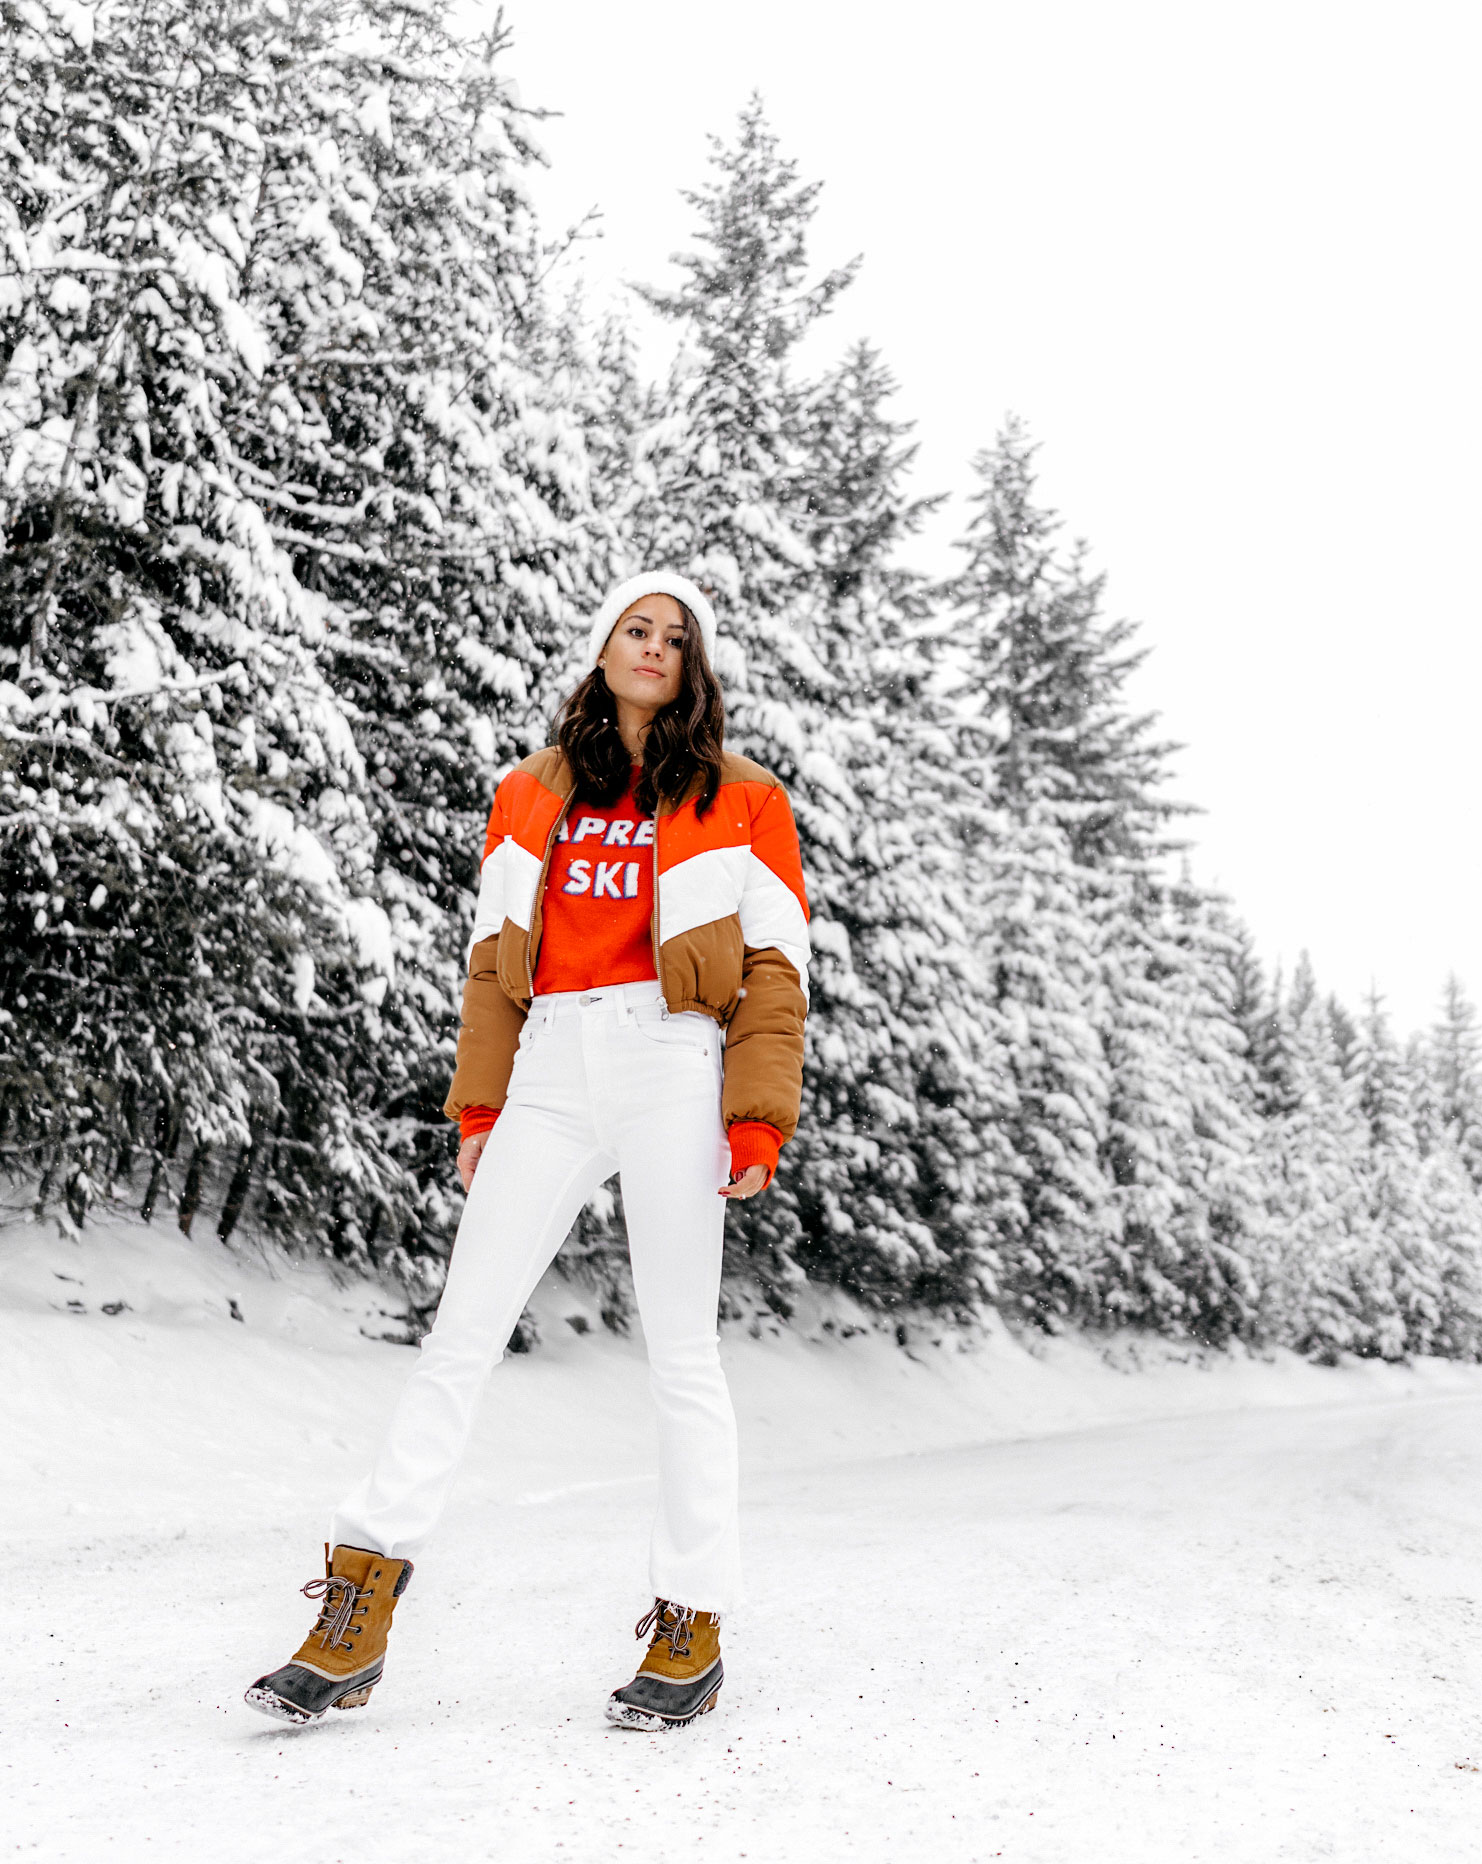 apres-ski-sweater-striped-vintage-puffer-coat-winter-snow-outfit-whistler-2.jpg